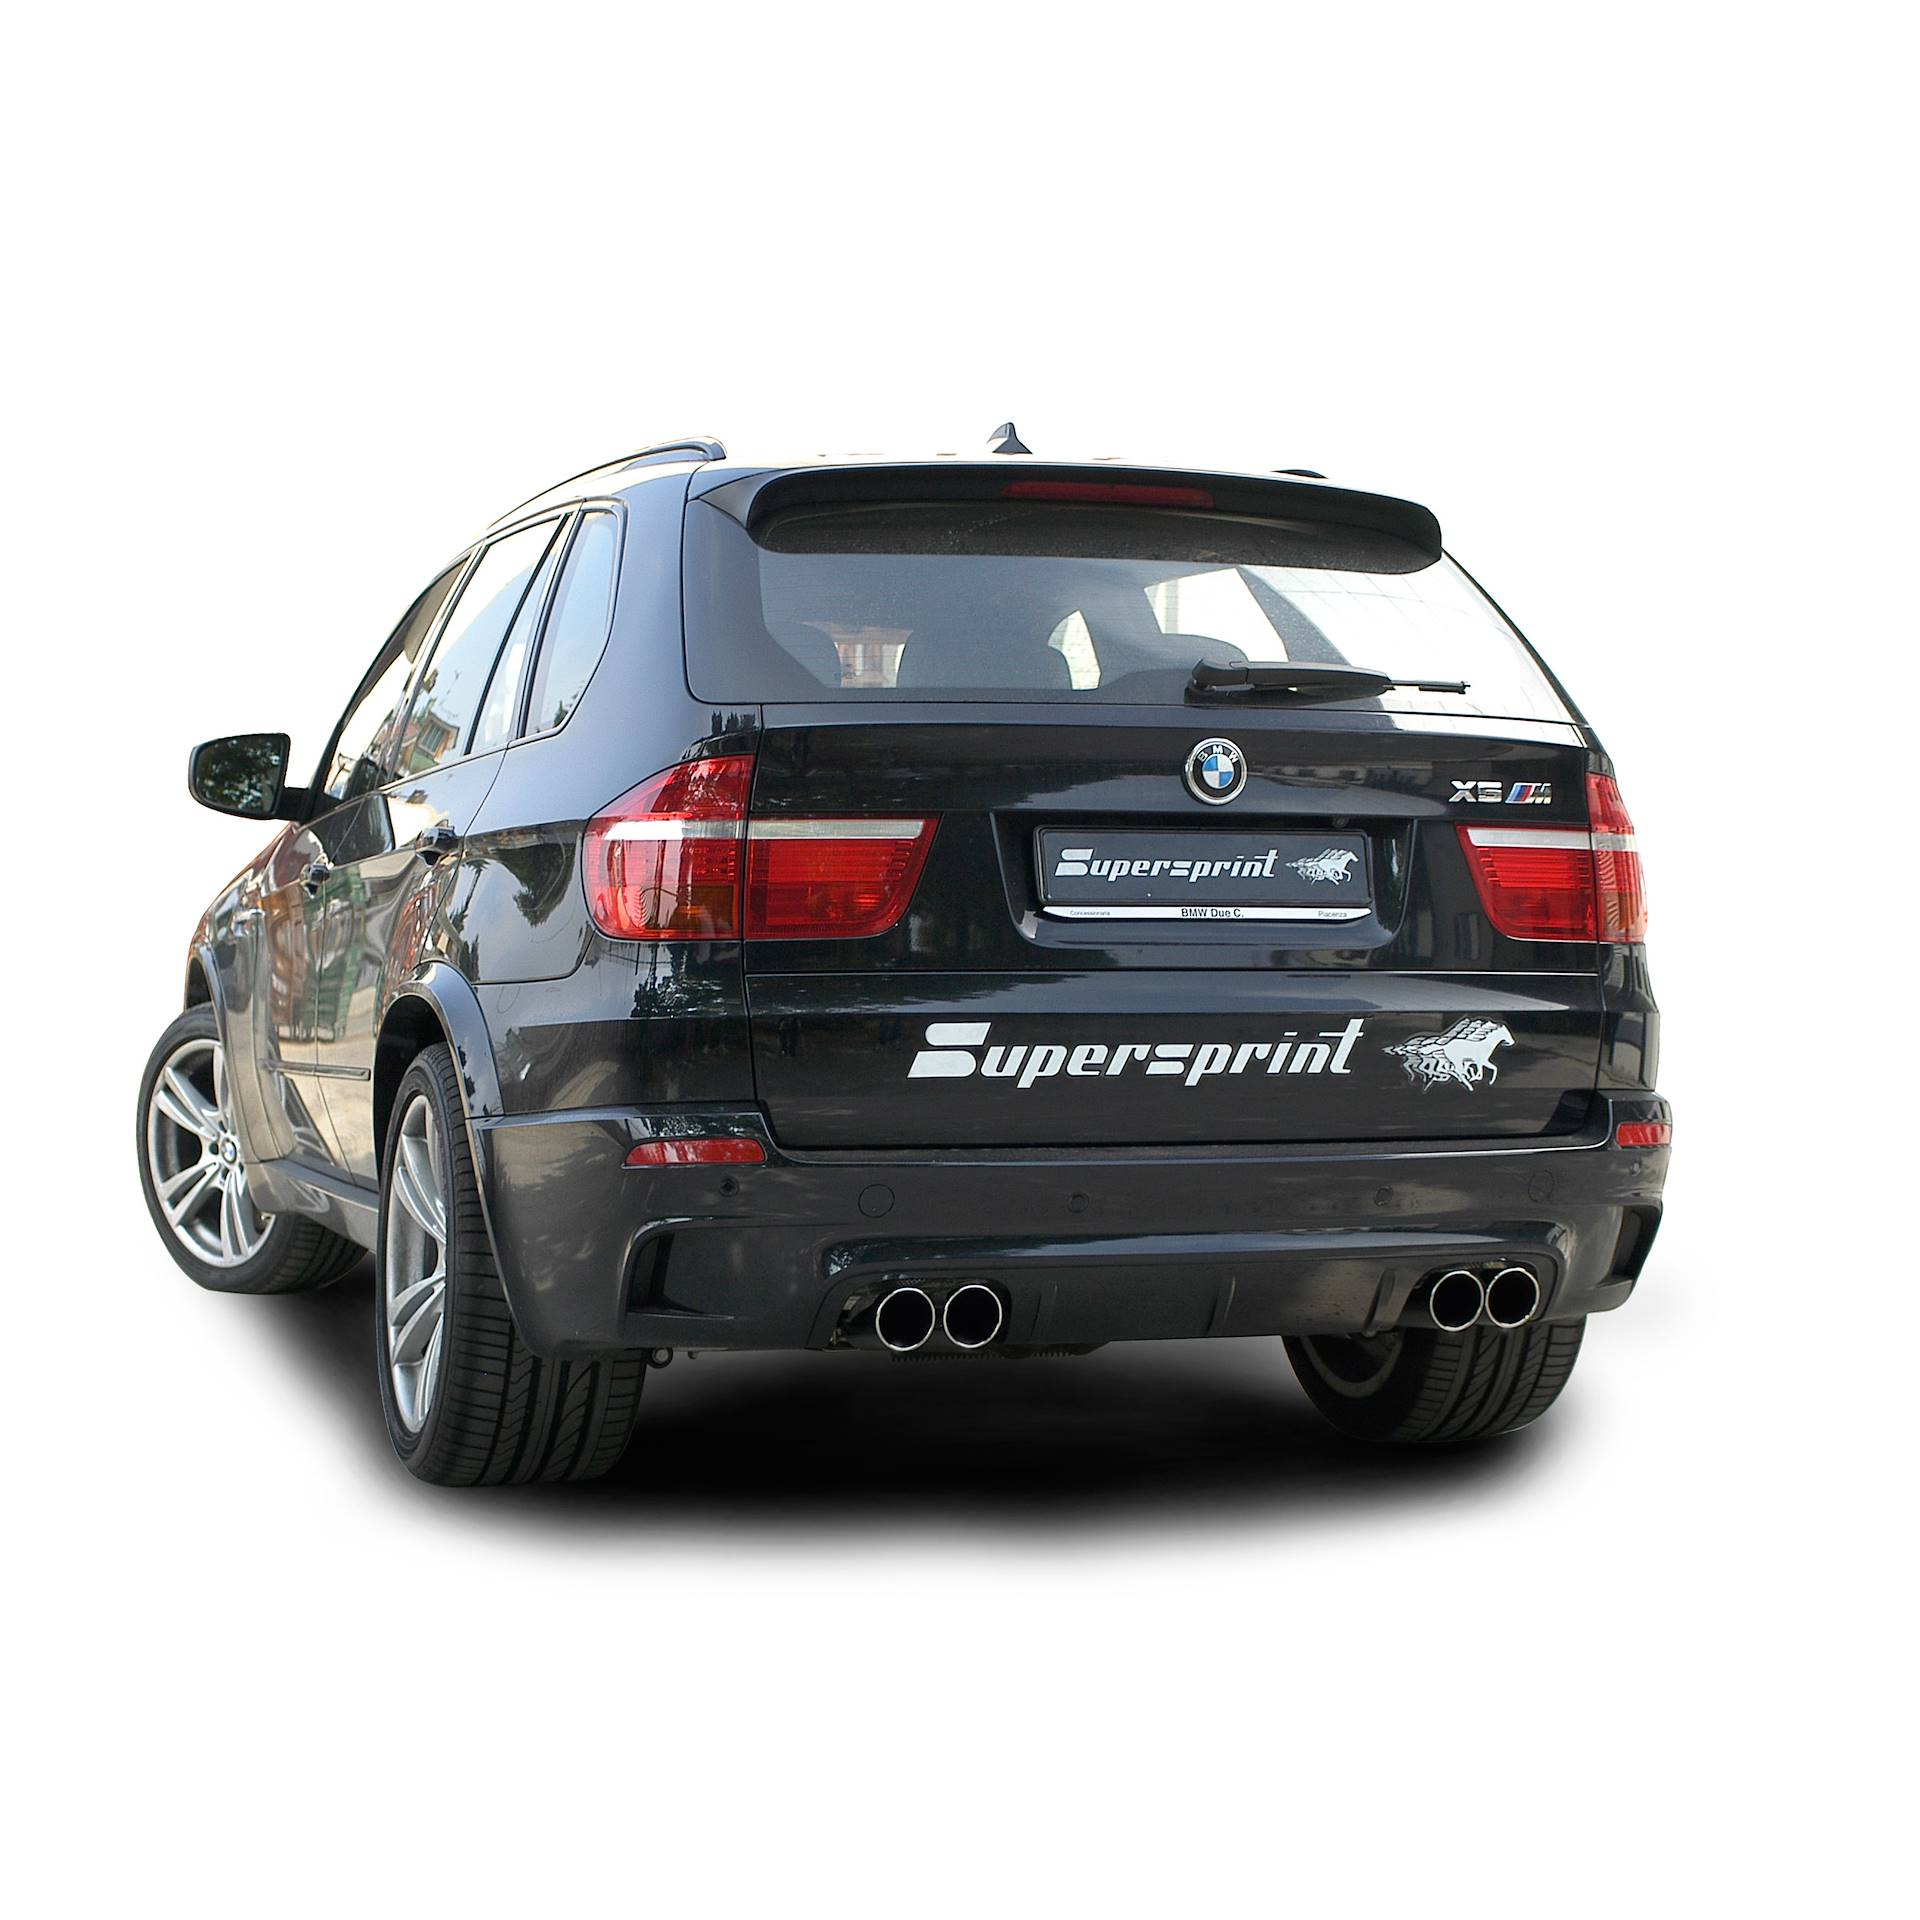 bmw e70 x5 m v8 bi turbo 555 hp 2010 2013 bmw m exhaust systems. Black Bedroom Furniture Sets. Home Design Ideas